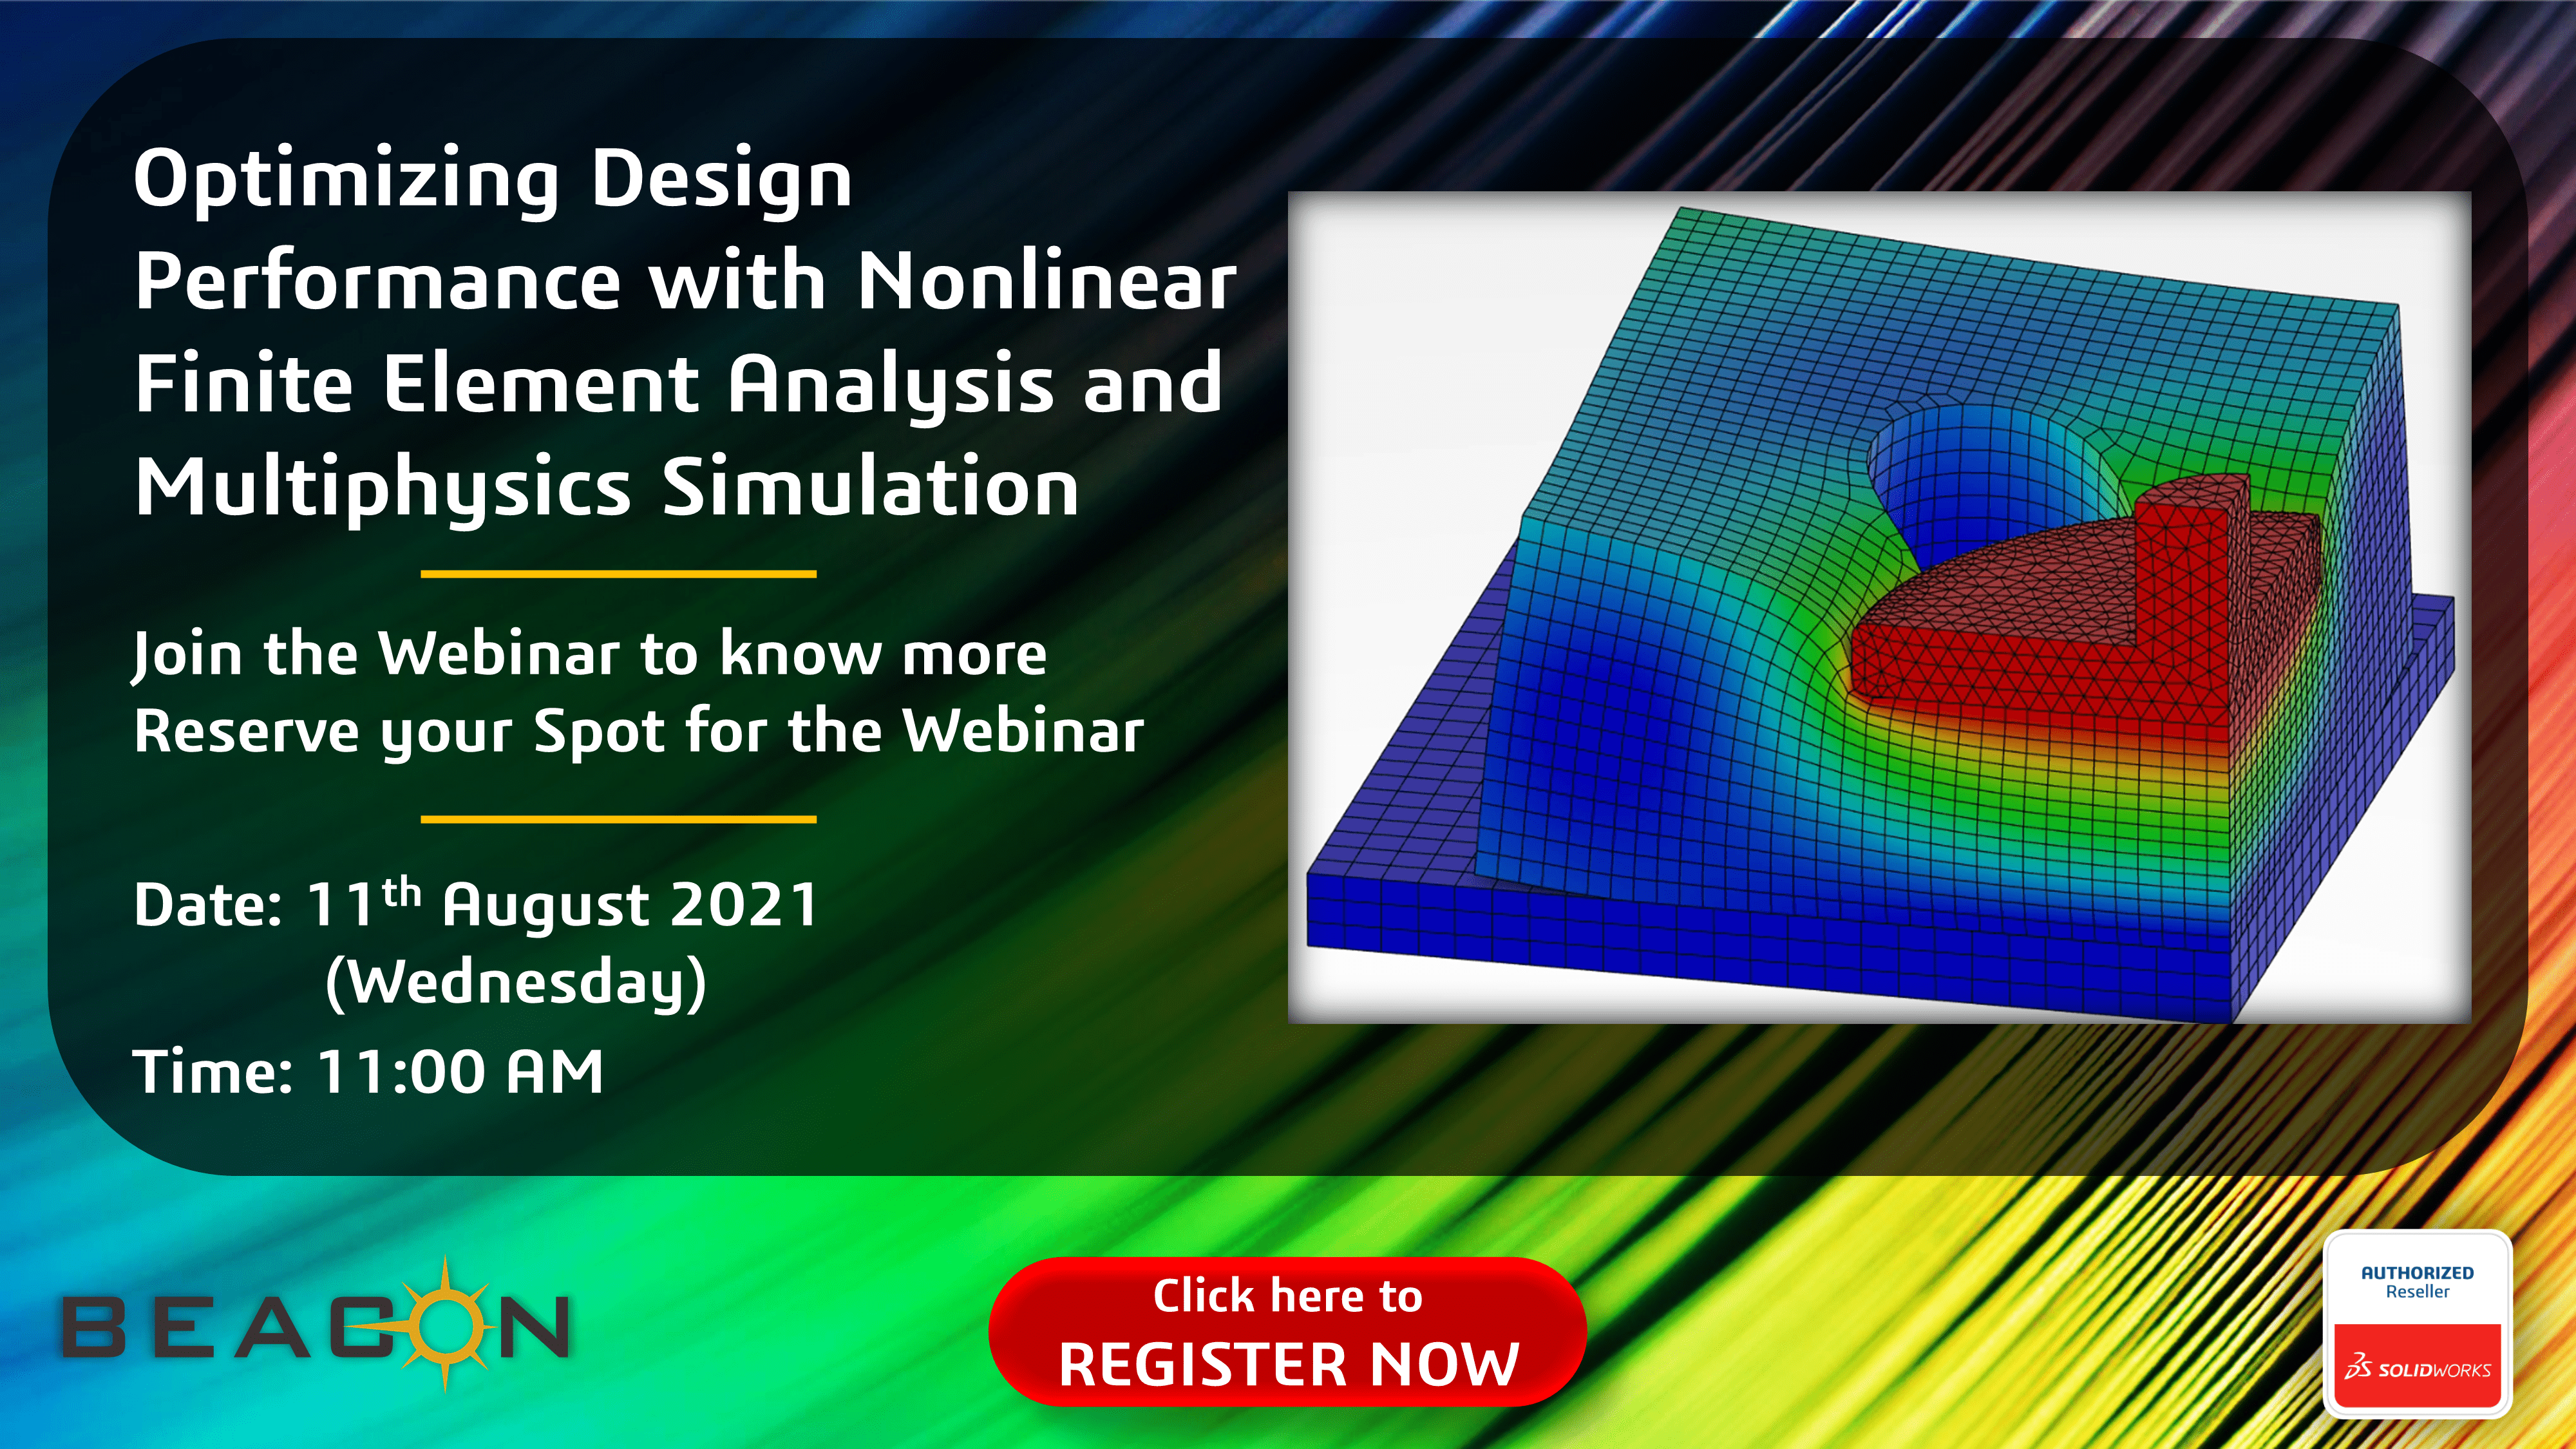 Optimizing Design Performance with Nonlinear Finite Element Analysis and Multiphysics Simulation